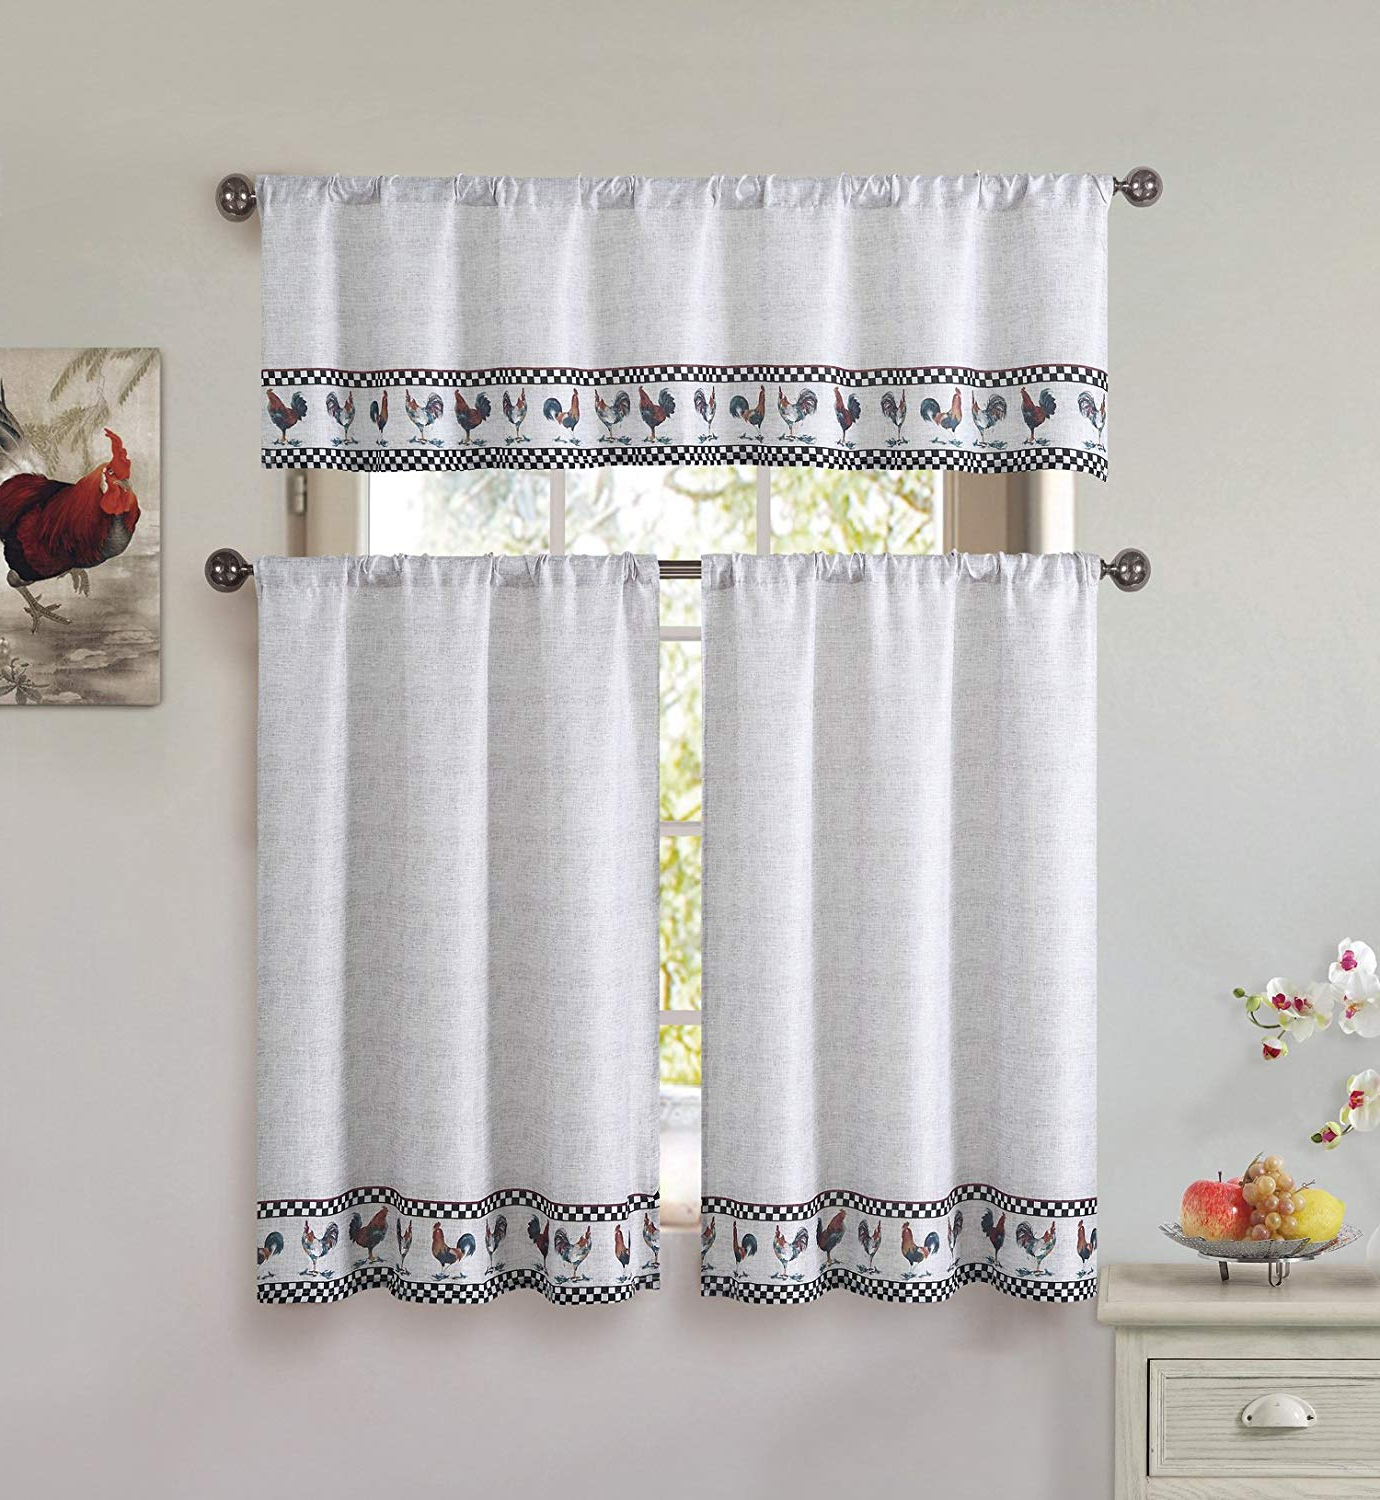 Embroidered 'coffee Cup' 5 Piece Kitchen Curtain Sets Throughout Well Known Cotton Blend 3 Piece Kitchen/cafe Tier Window Curtain Set: Rooster And Check Design (View 7 of 20)